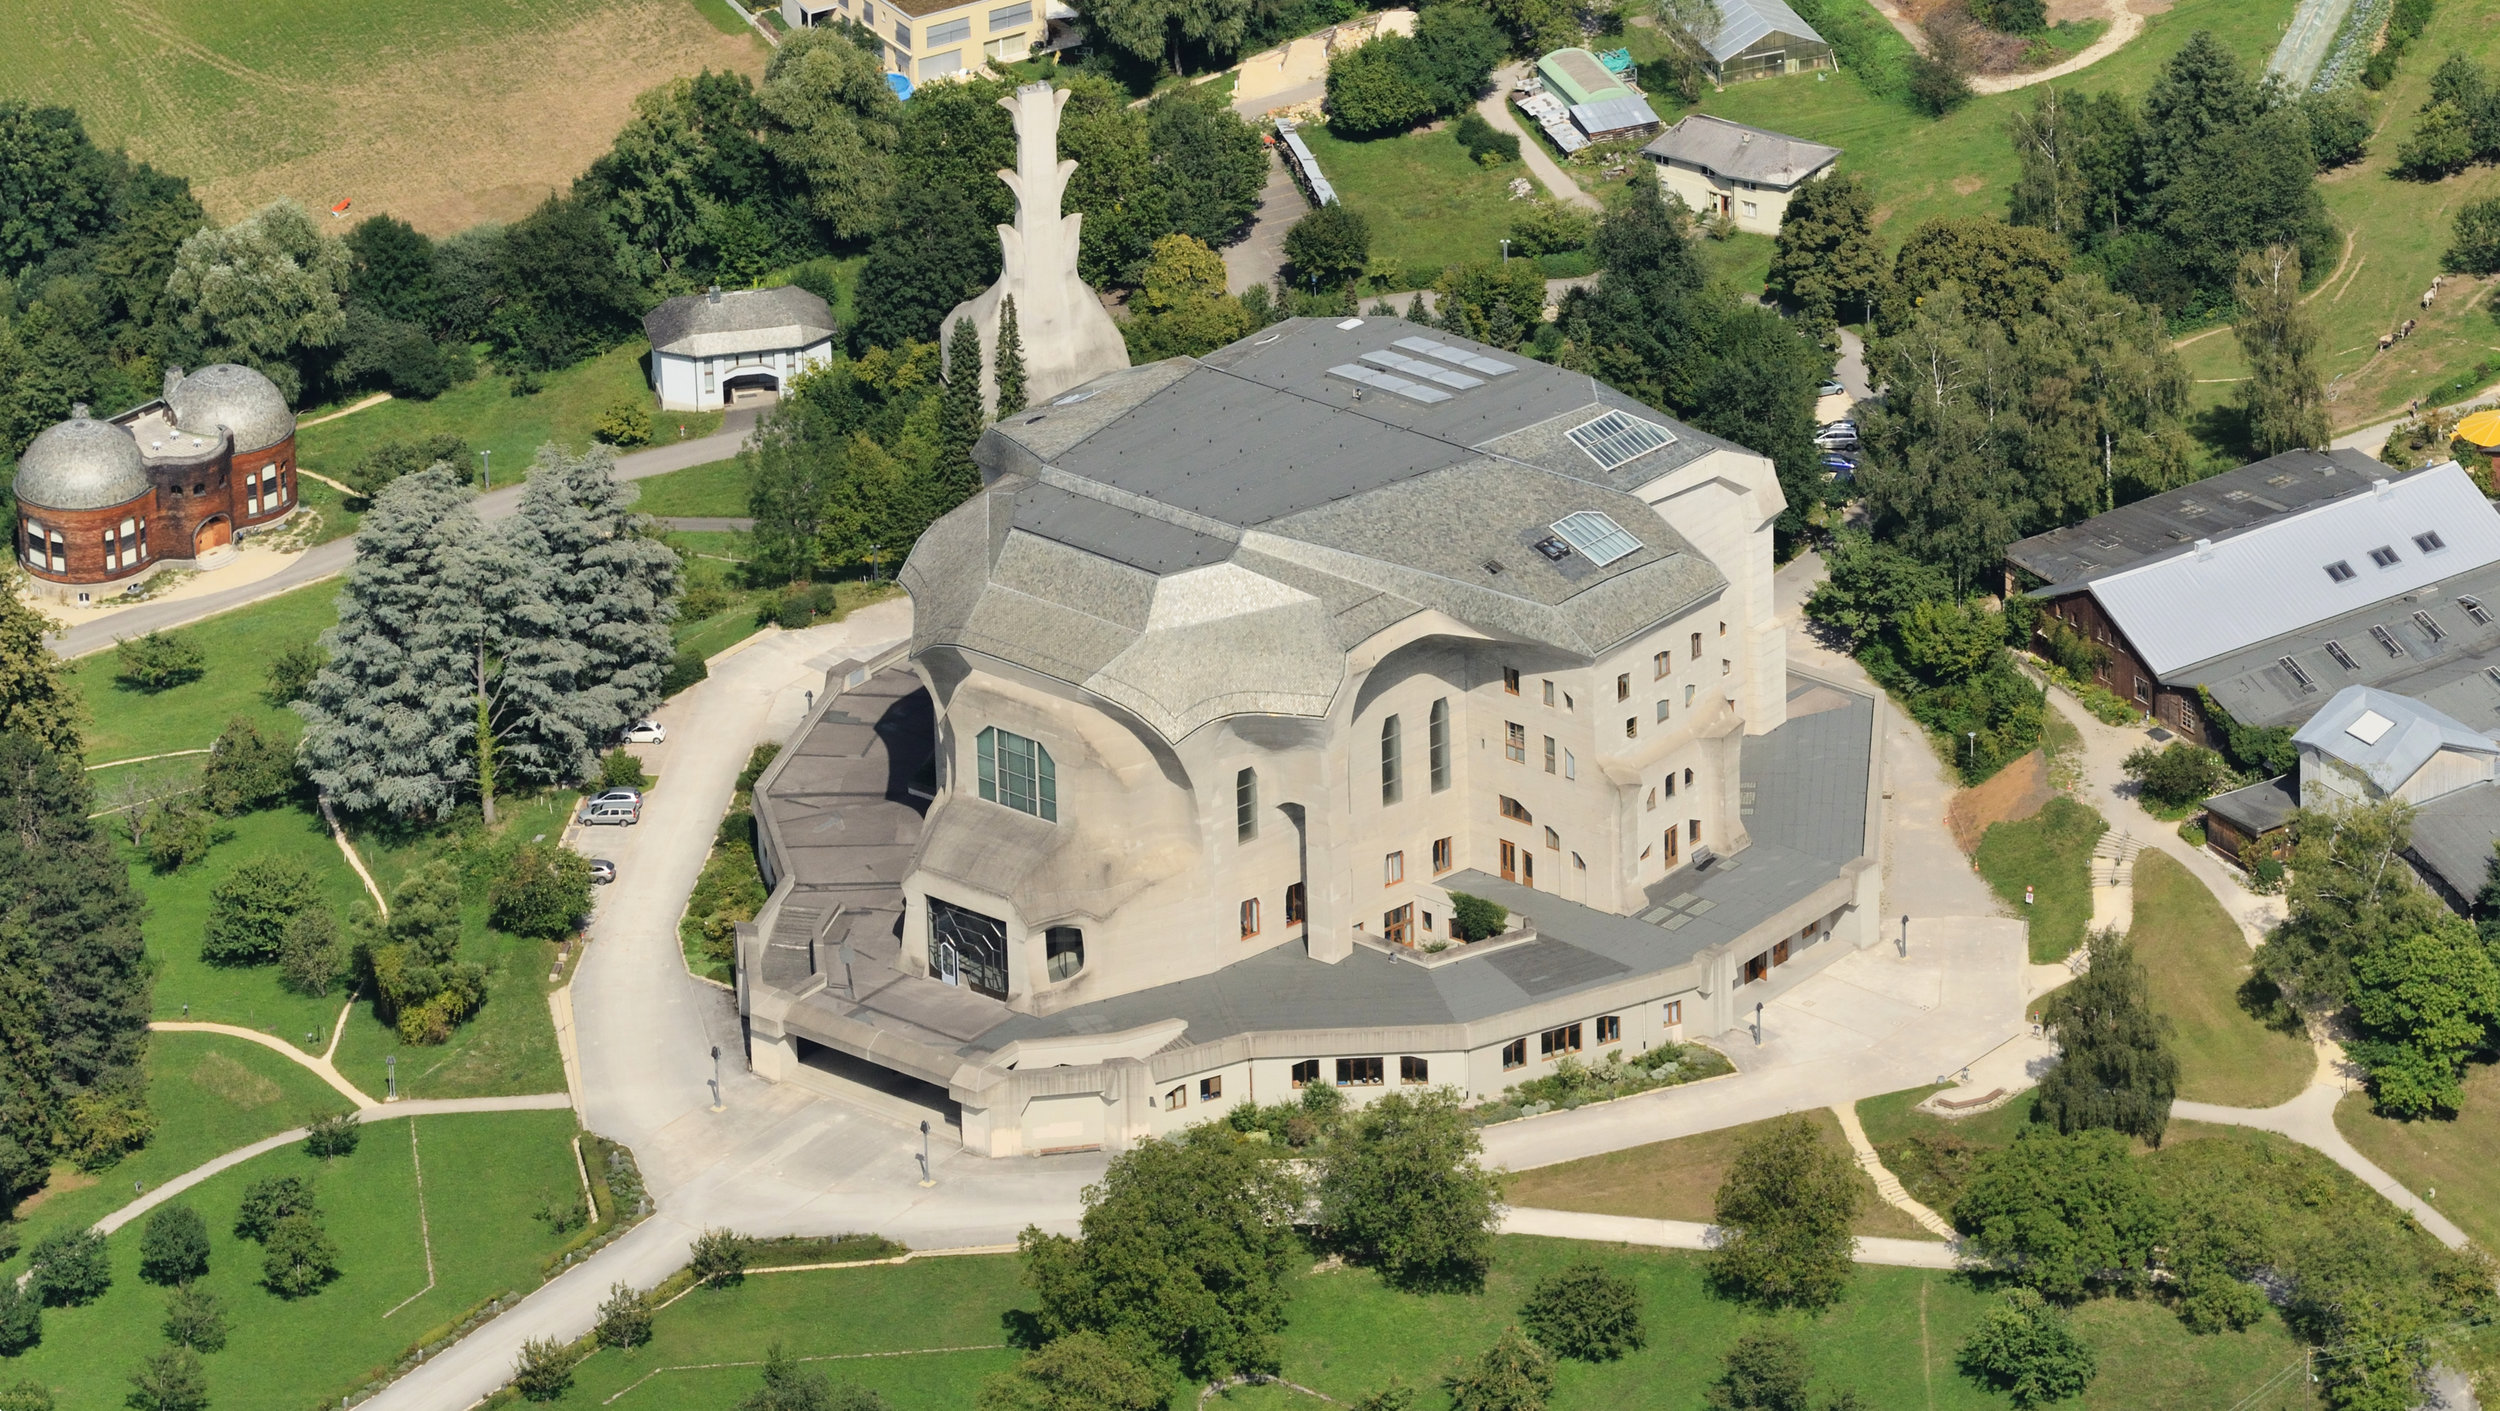 The Second Goetheanum (Built in 1928), the first one burnt down in 1922.